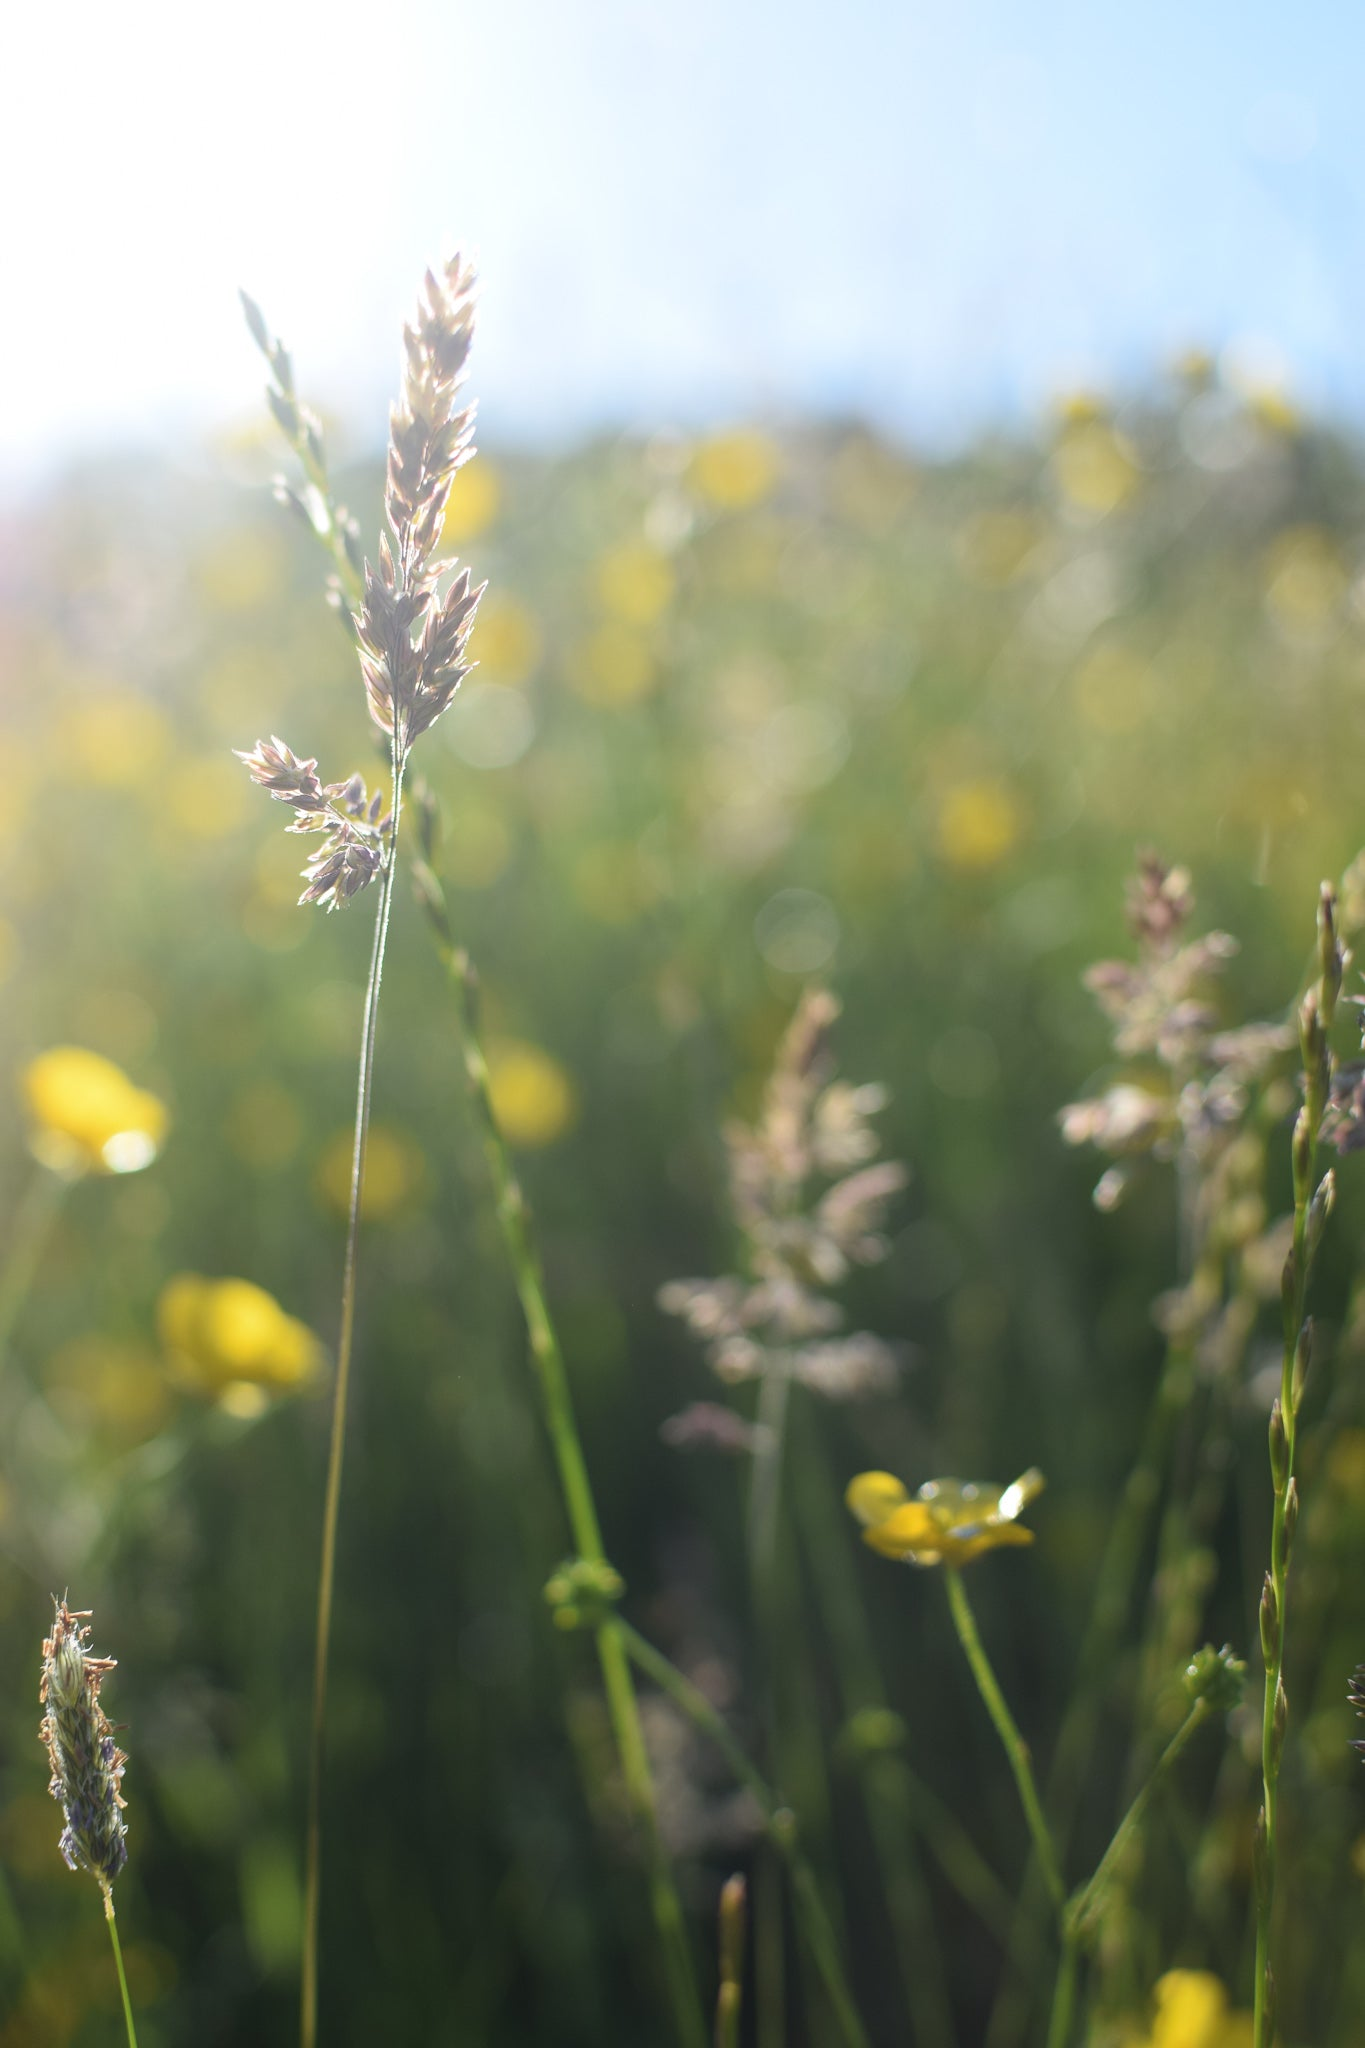 details of a buttercup meadow